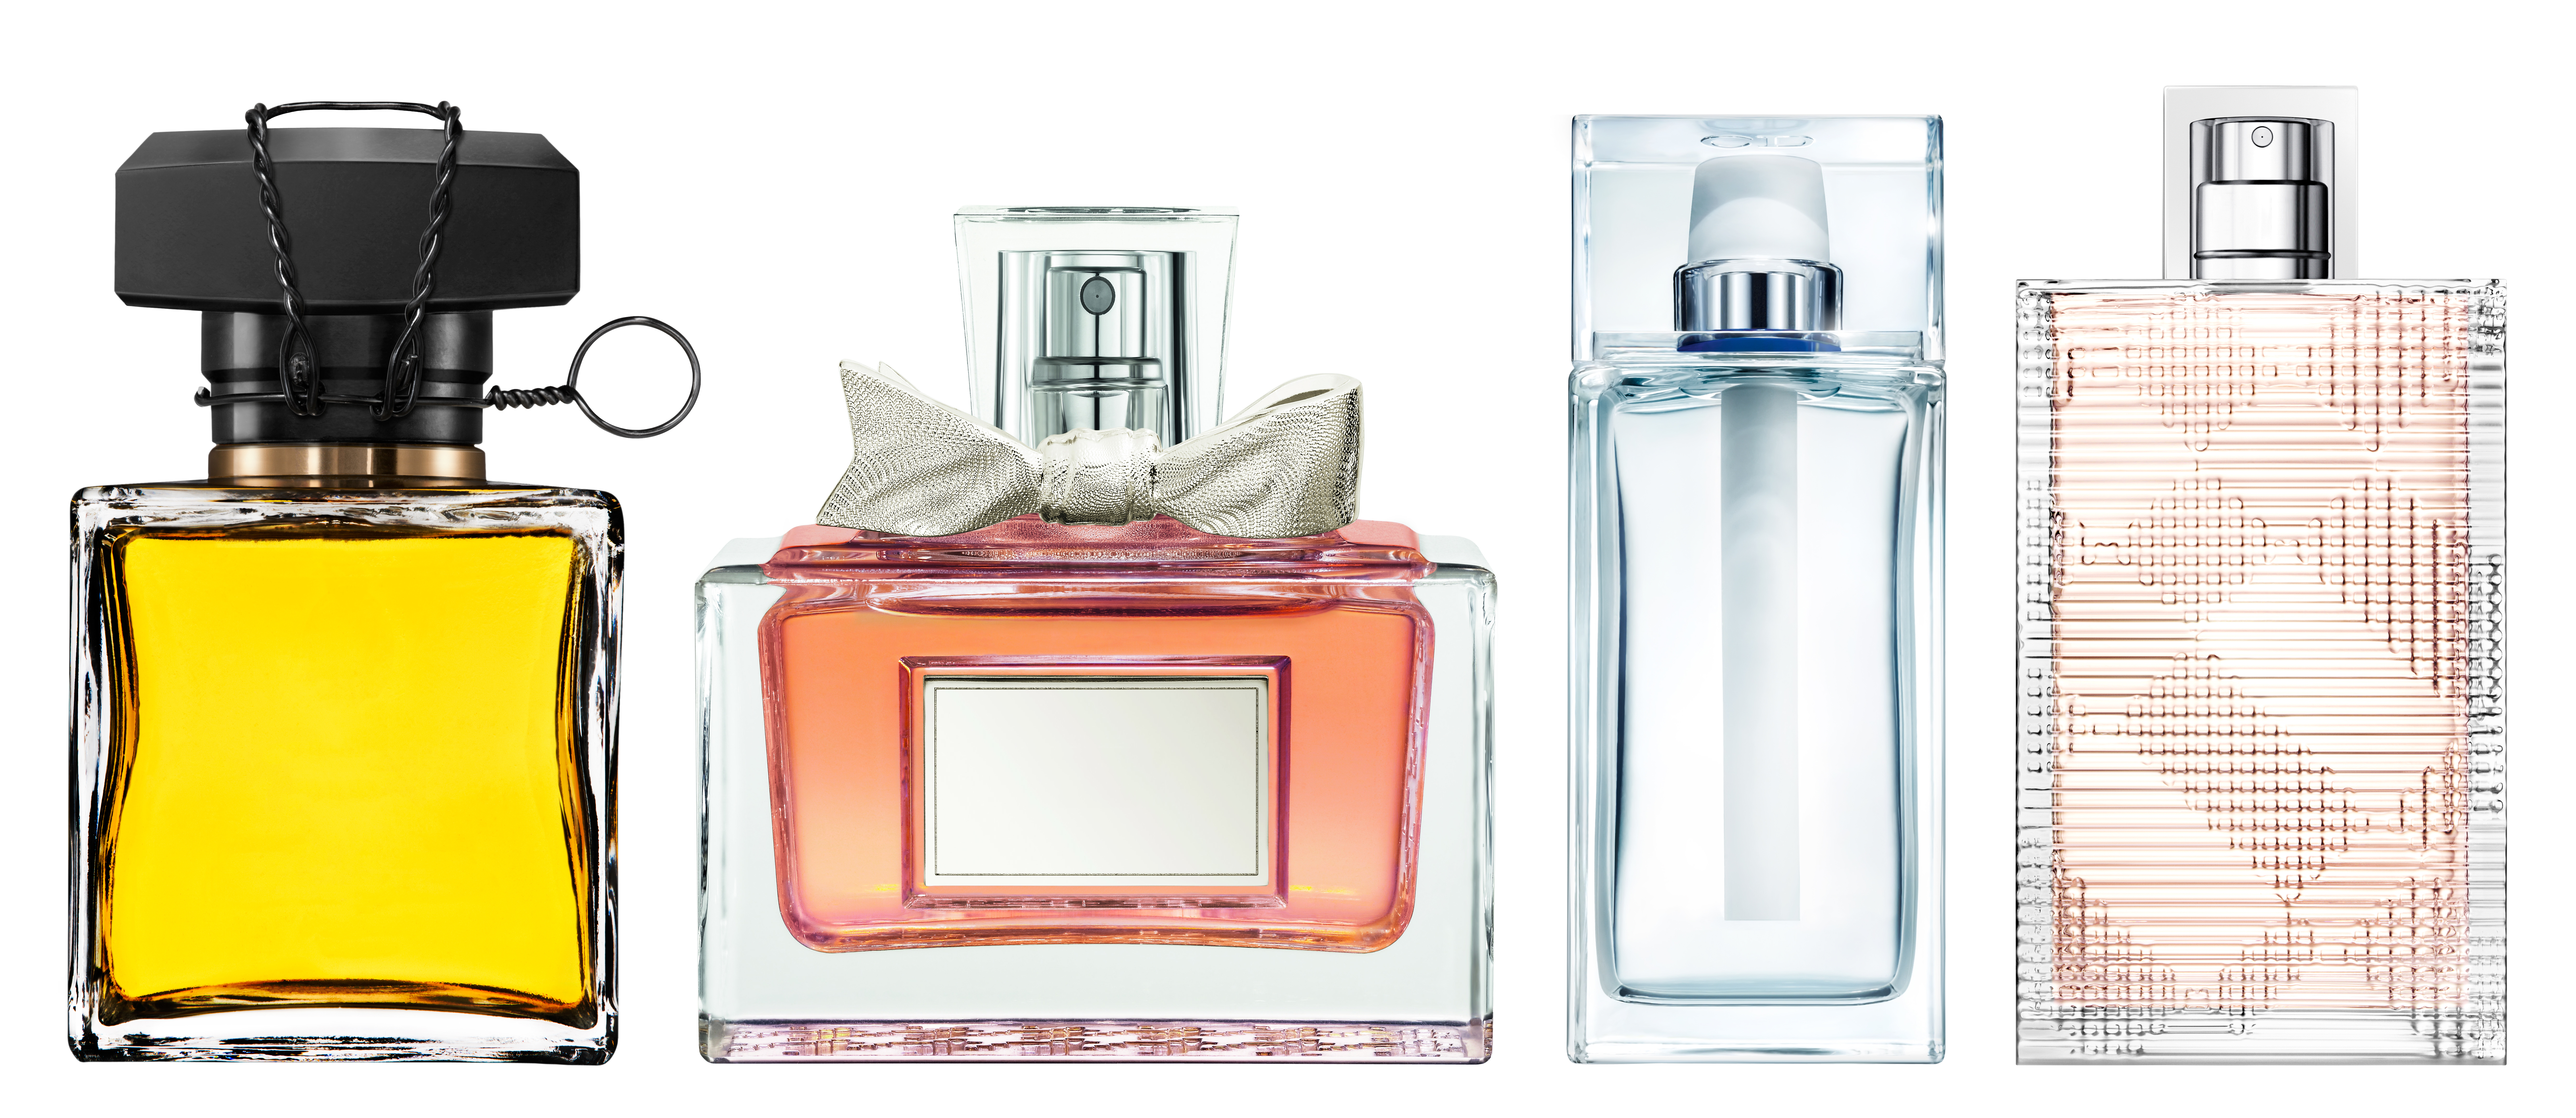 Central Better Wear Clothing Has Great Deals On Fragrances